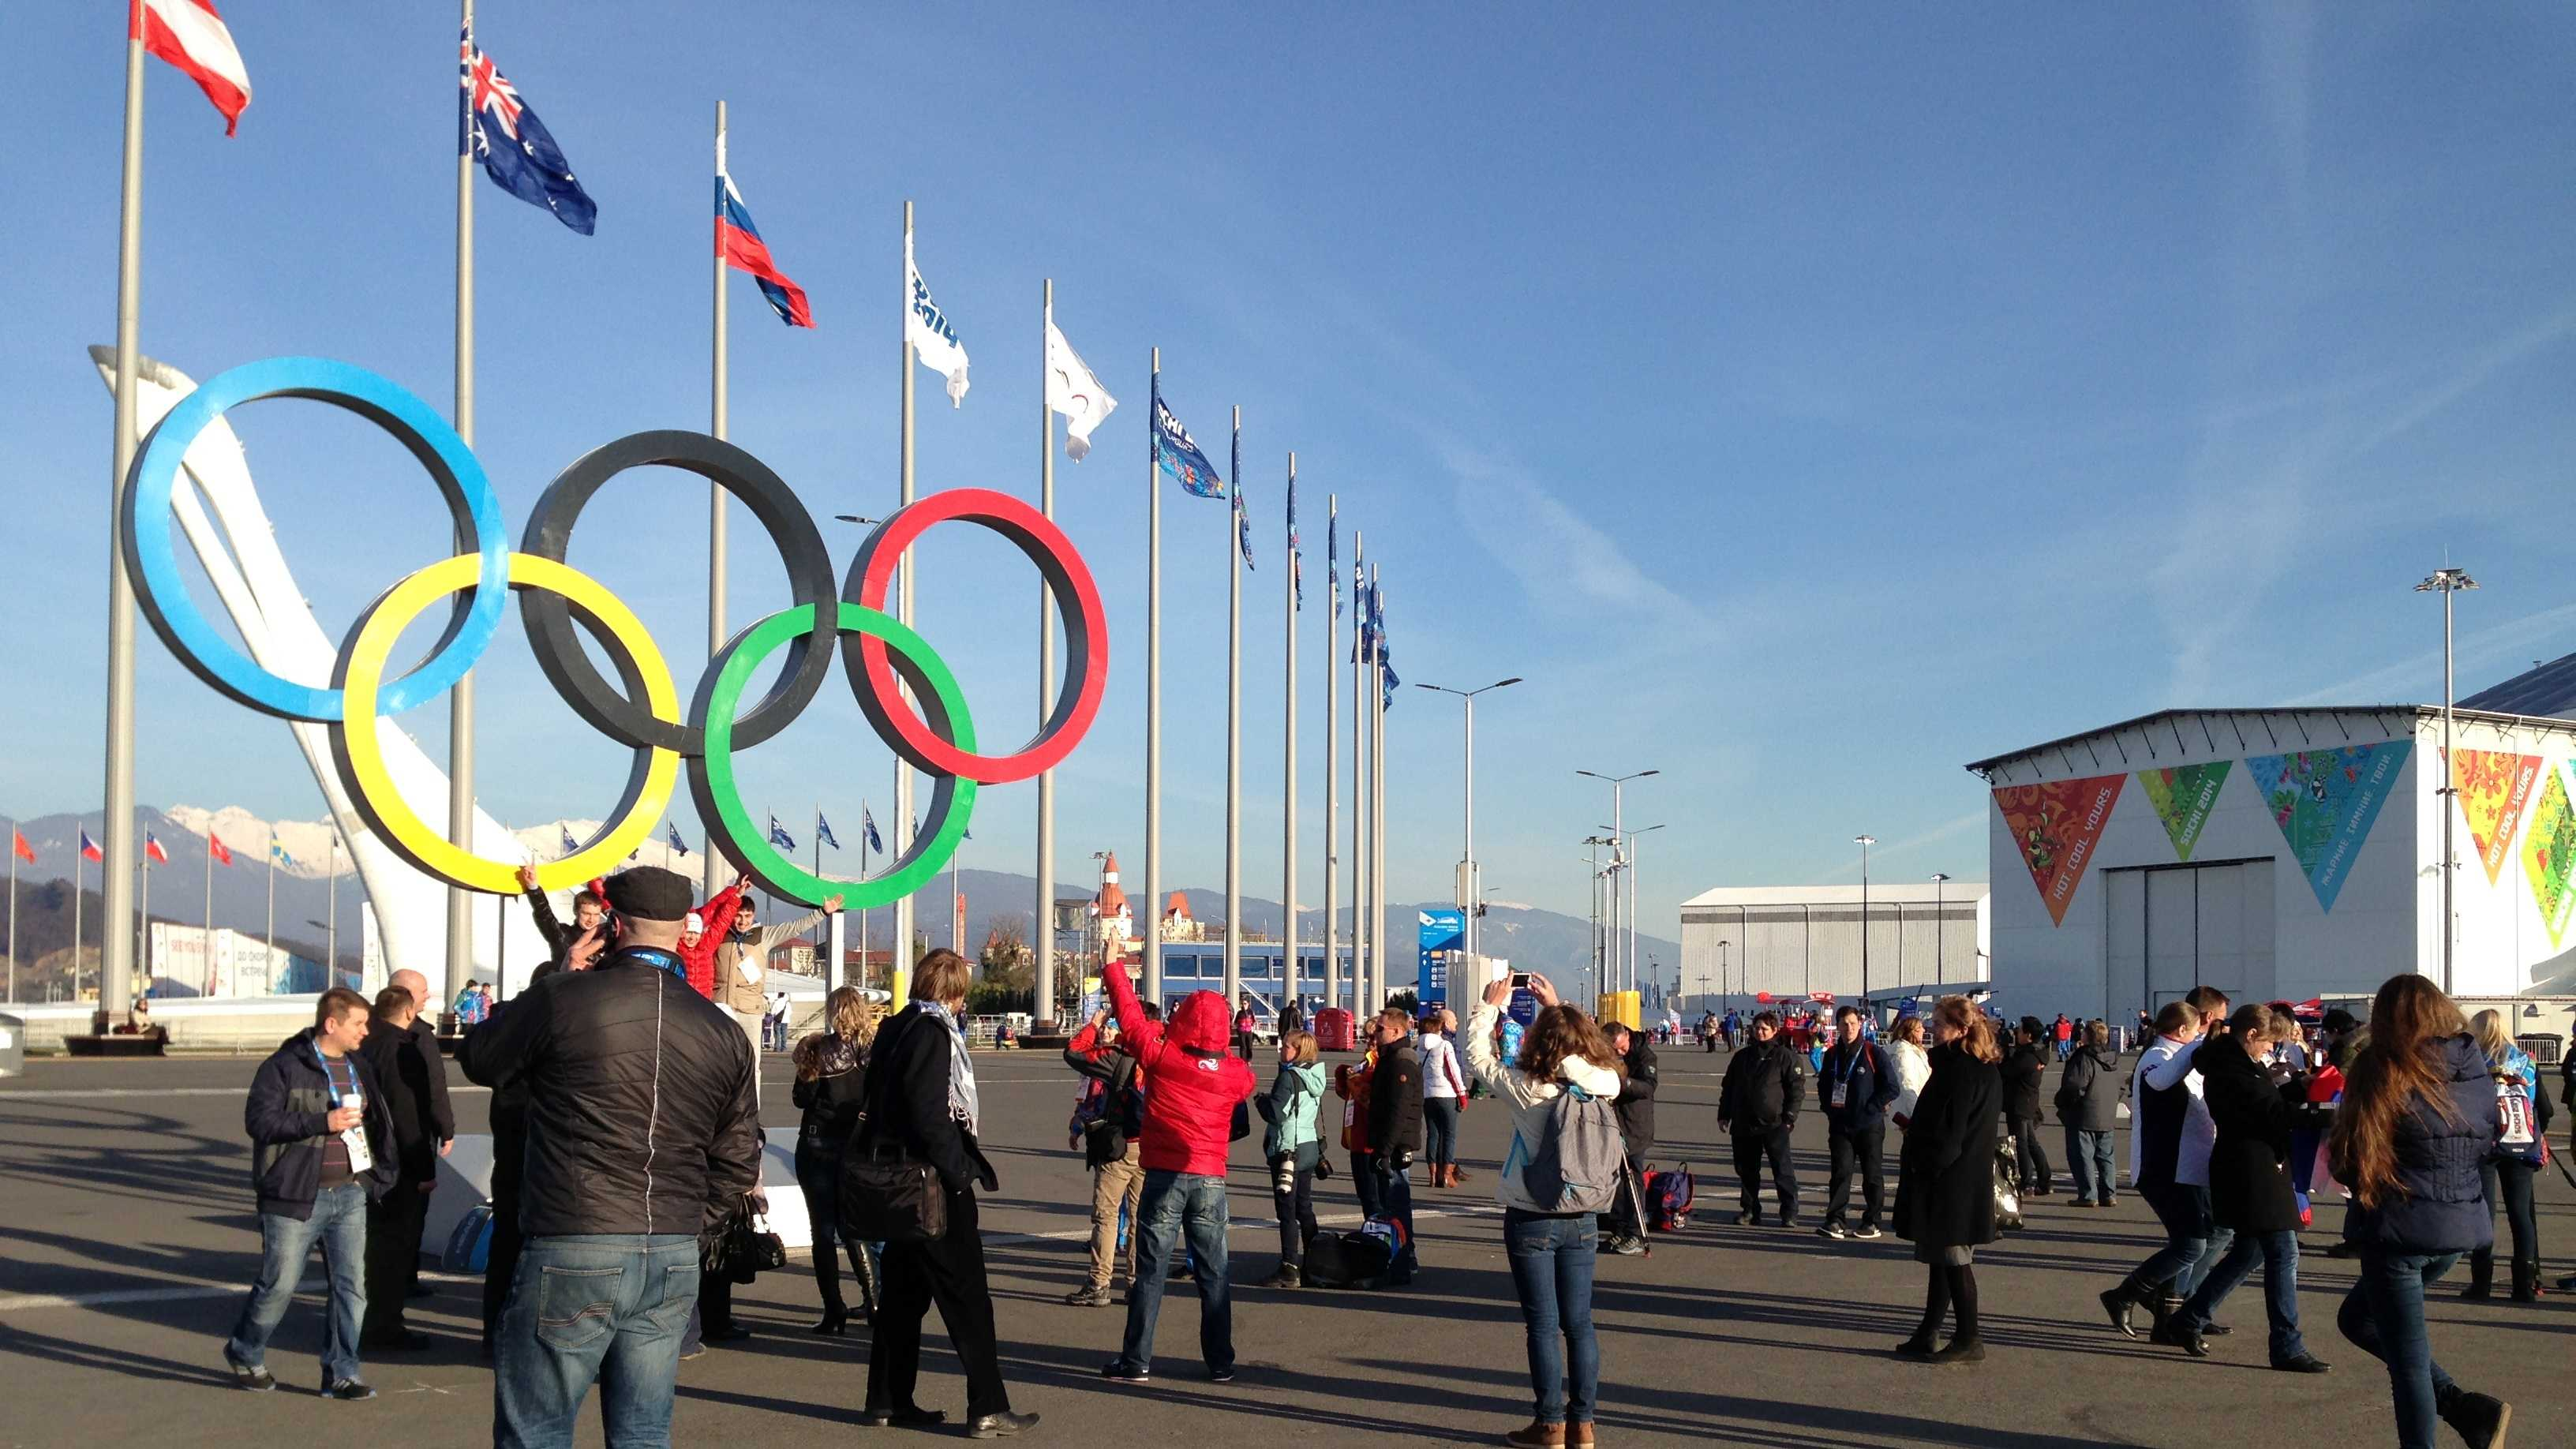 Sochi's Olympic Park is open to the public, but people need a ticket to come in and get a tour.